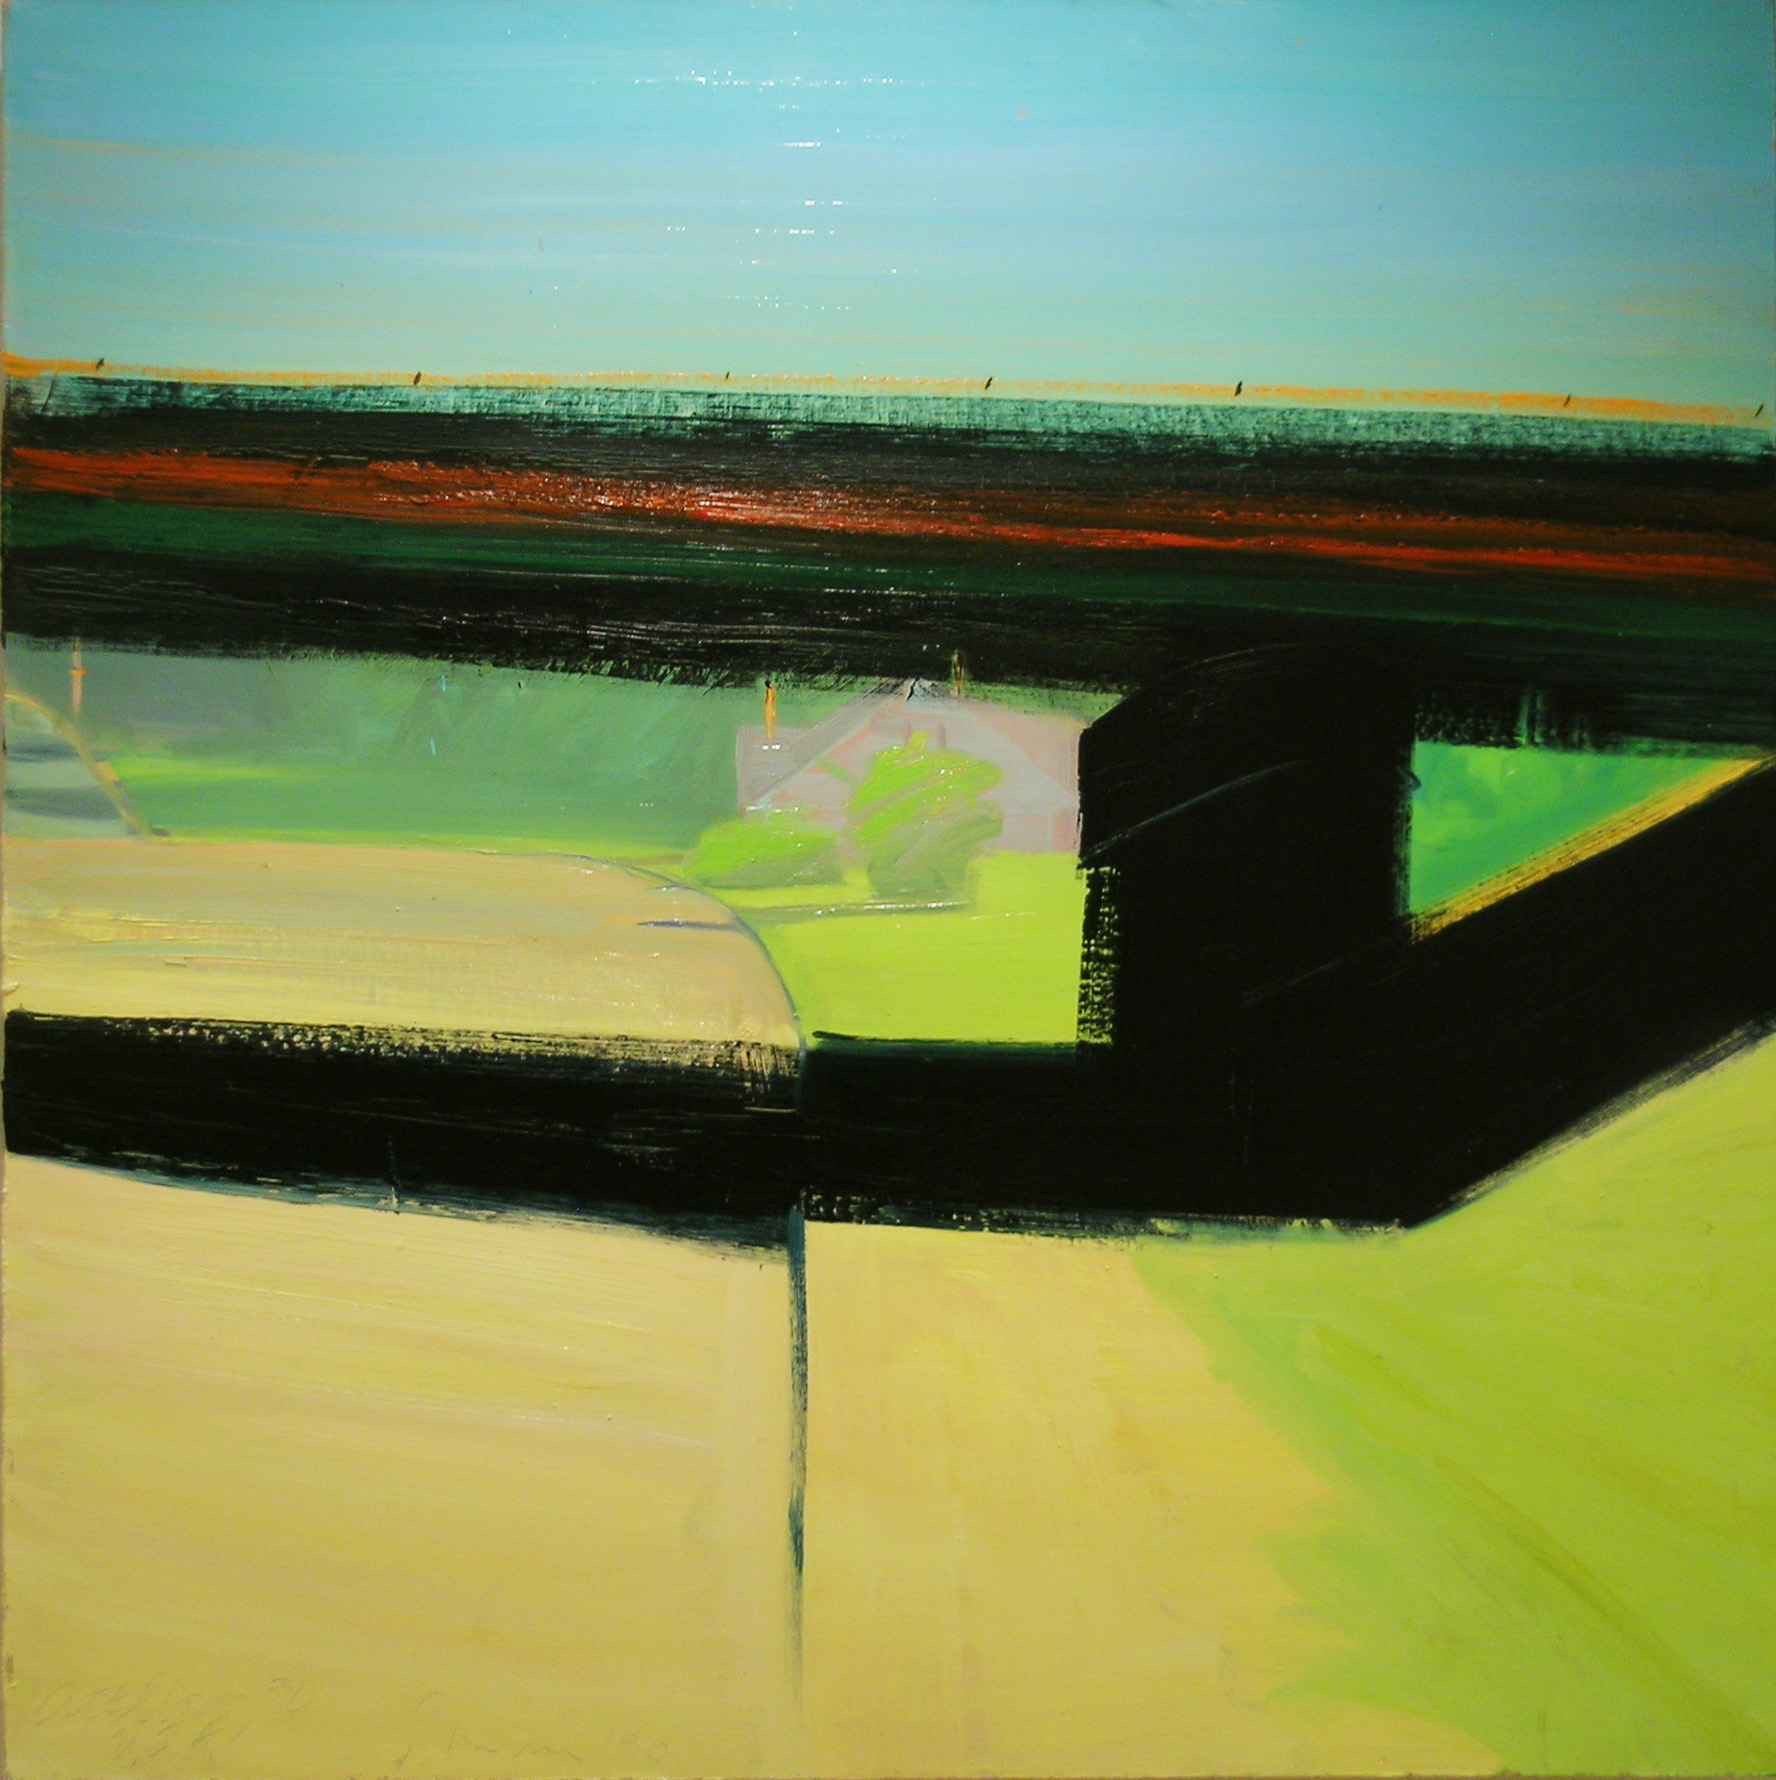 Attleboro,  1990 oil on canvas, 39 x 39 inches